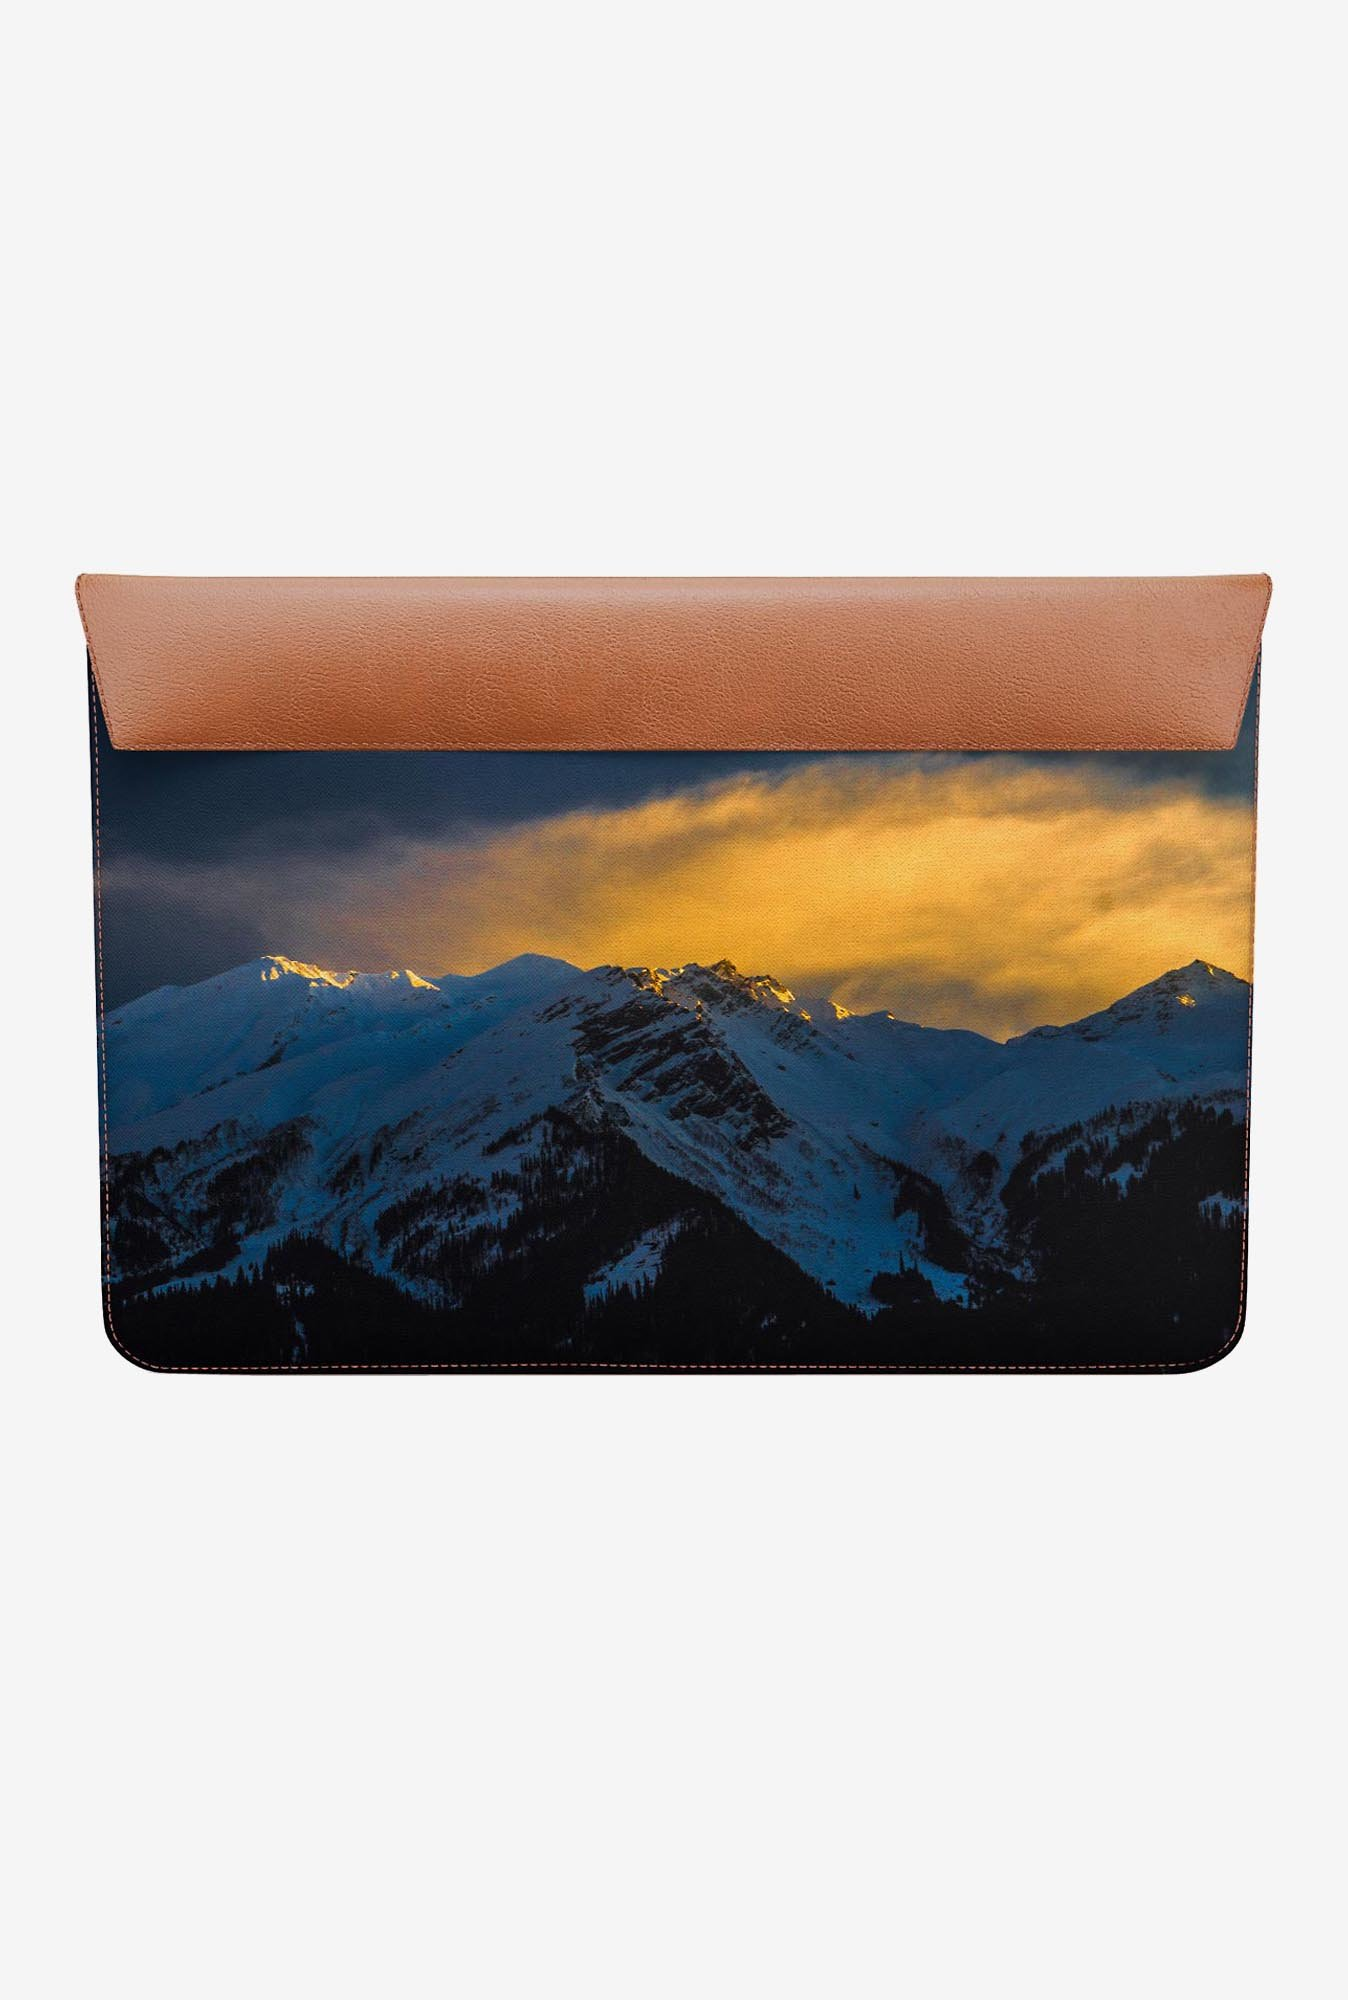 DailyObjects Snowy Peaks MacBook Air 11 Envelope Sleeve